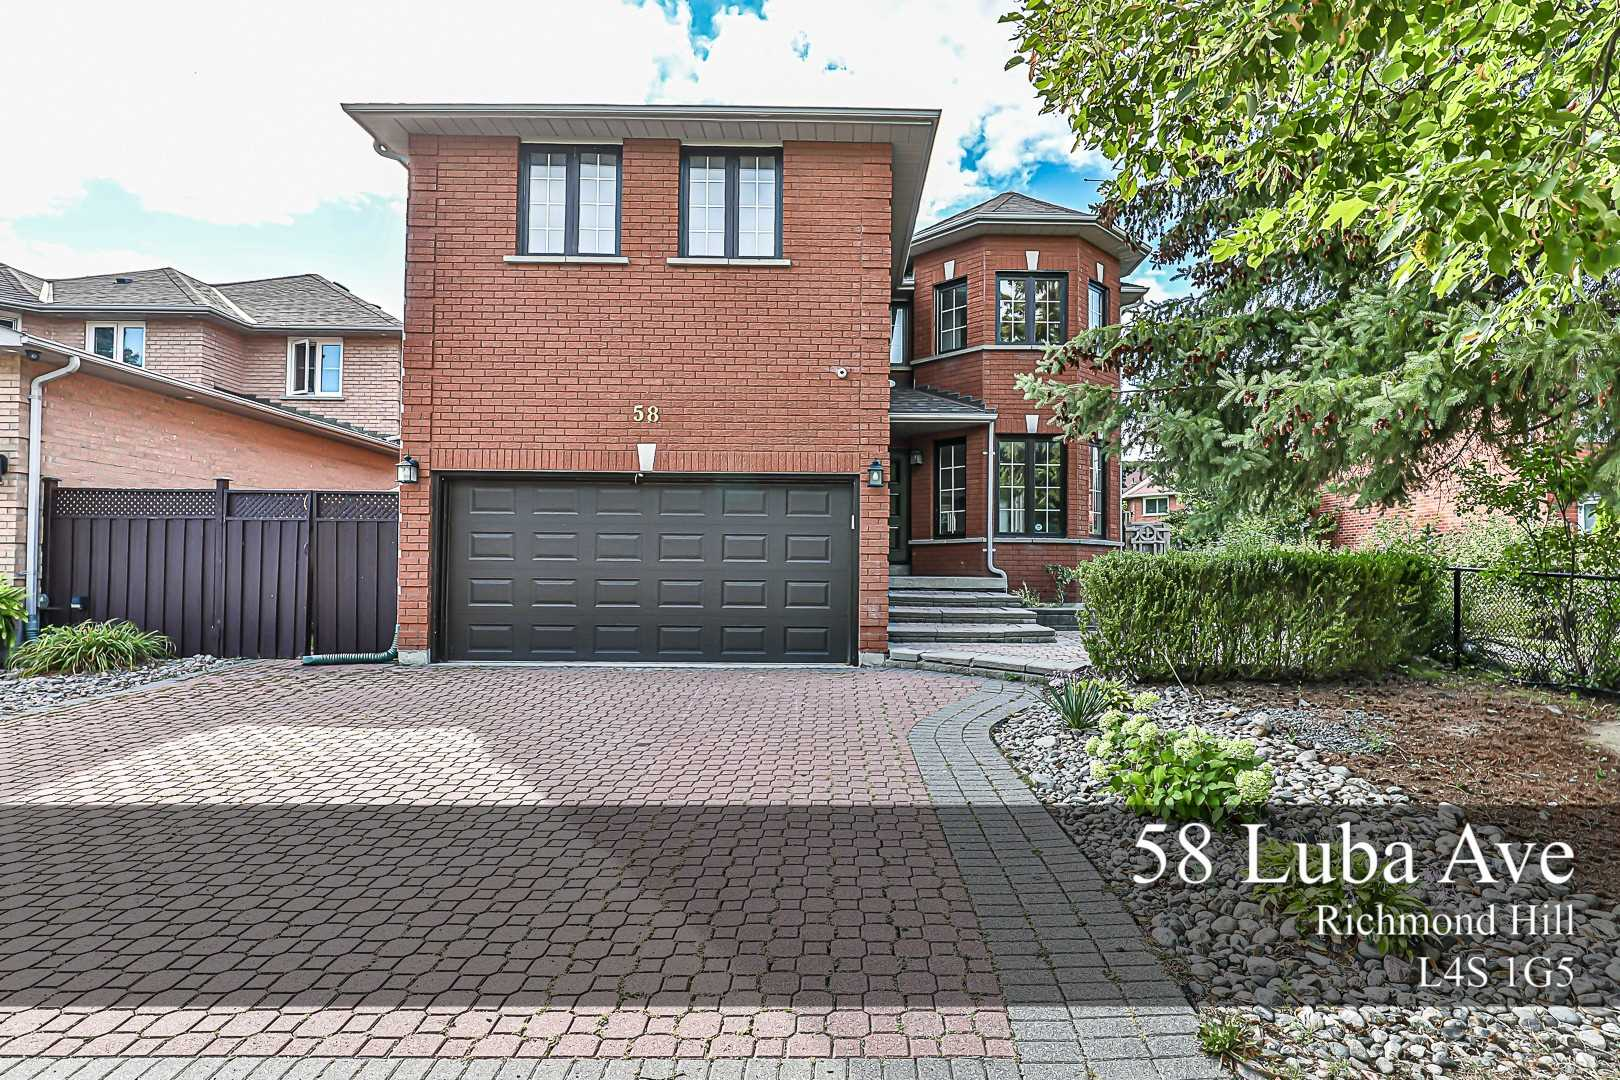 pictures of 58 Luba Ave, Richmond Hill L4S1G5